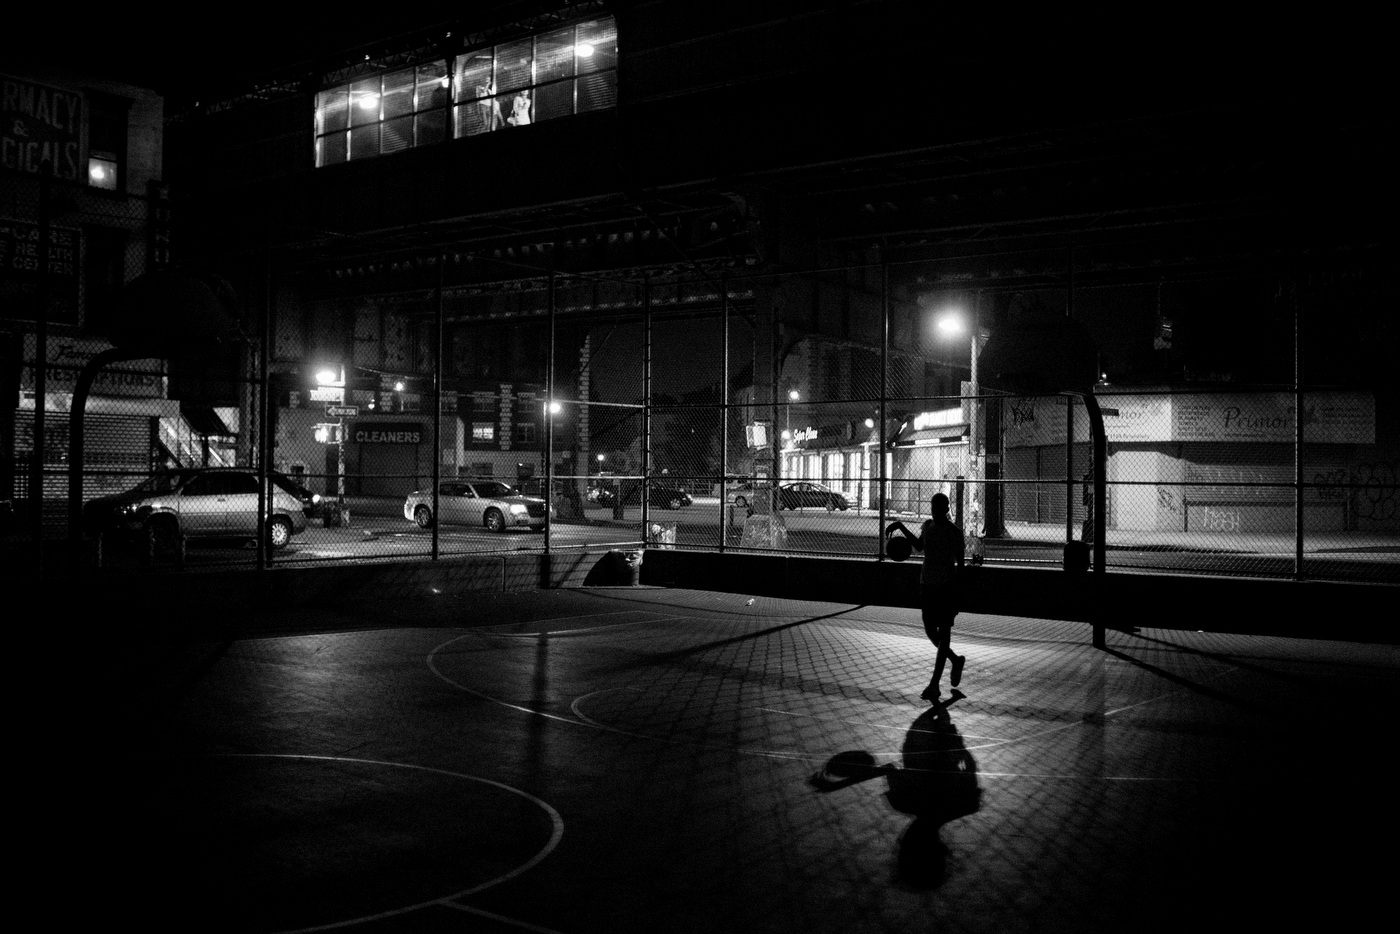 Zayan, 14, plays basketball alone well after the close of the public playground near the Kosciuzko J train stop in Bushwick, NY. Zayan grew up in this neighborhood.